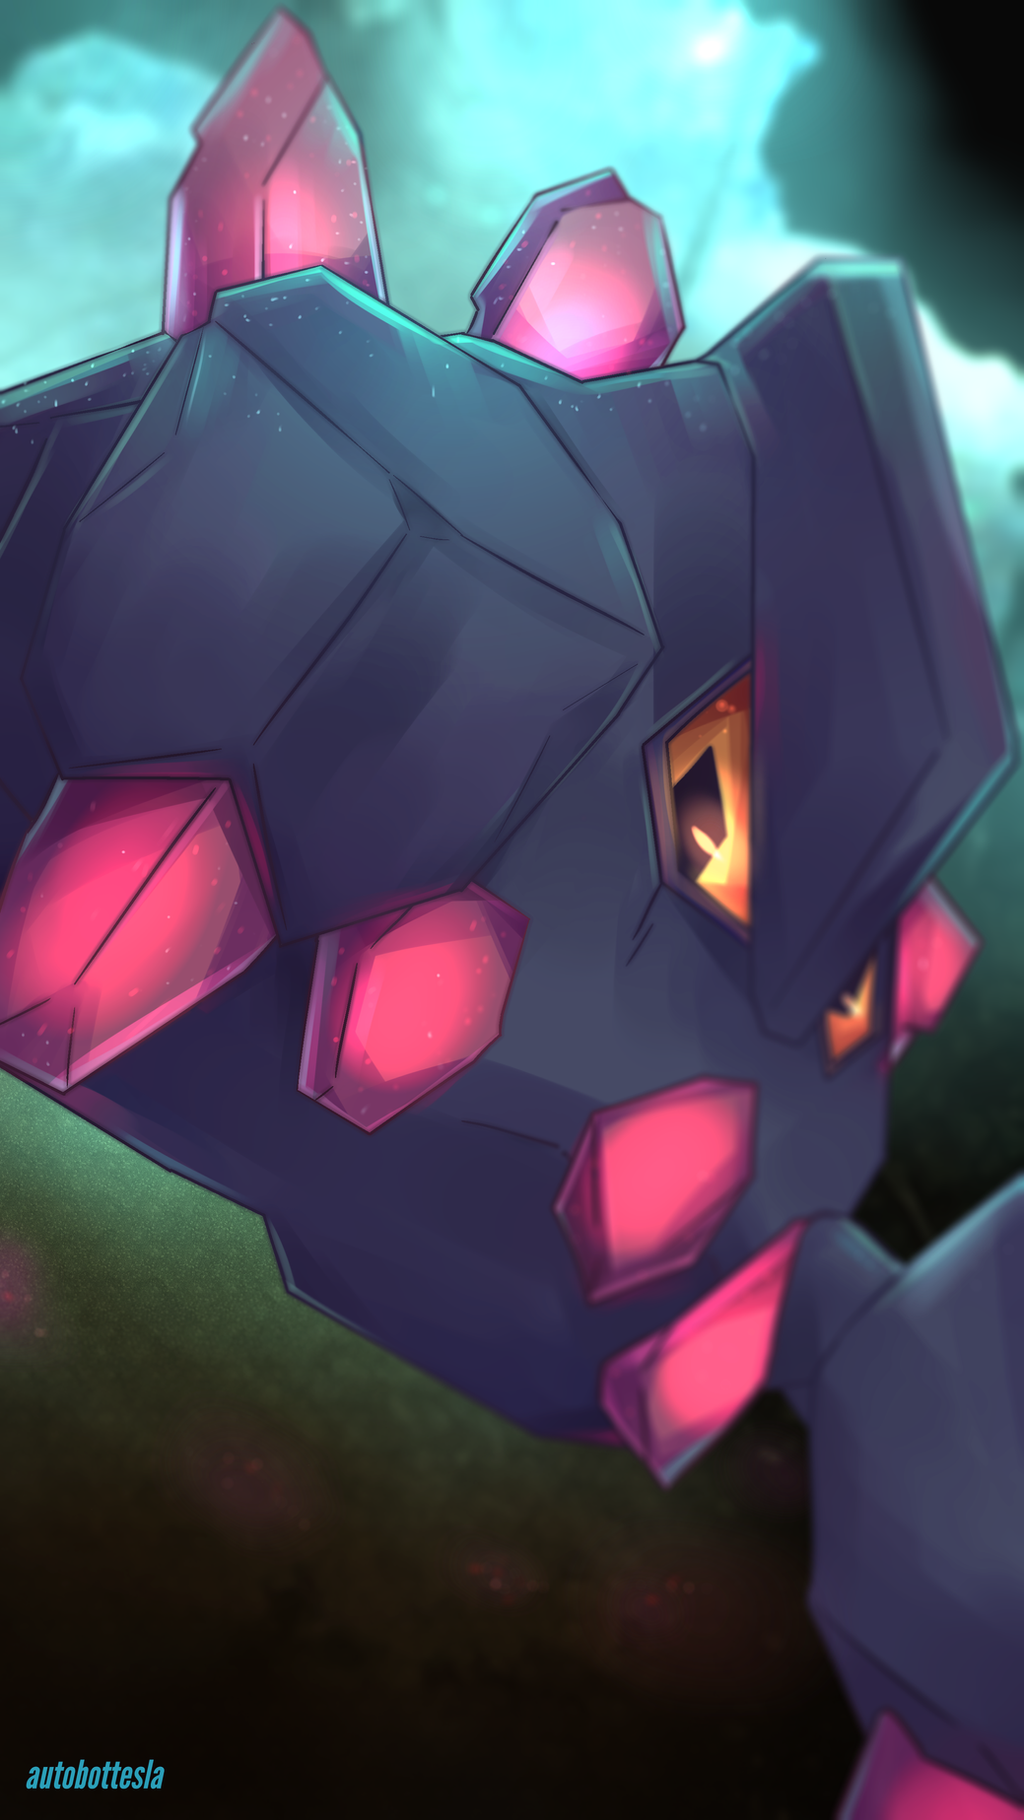 gigalith wallpaper how to - photo #34